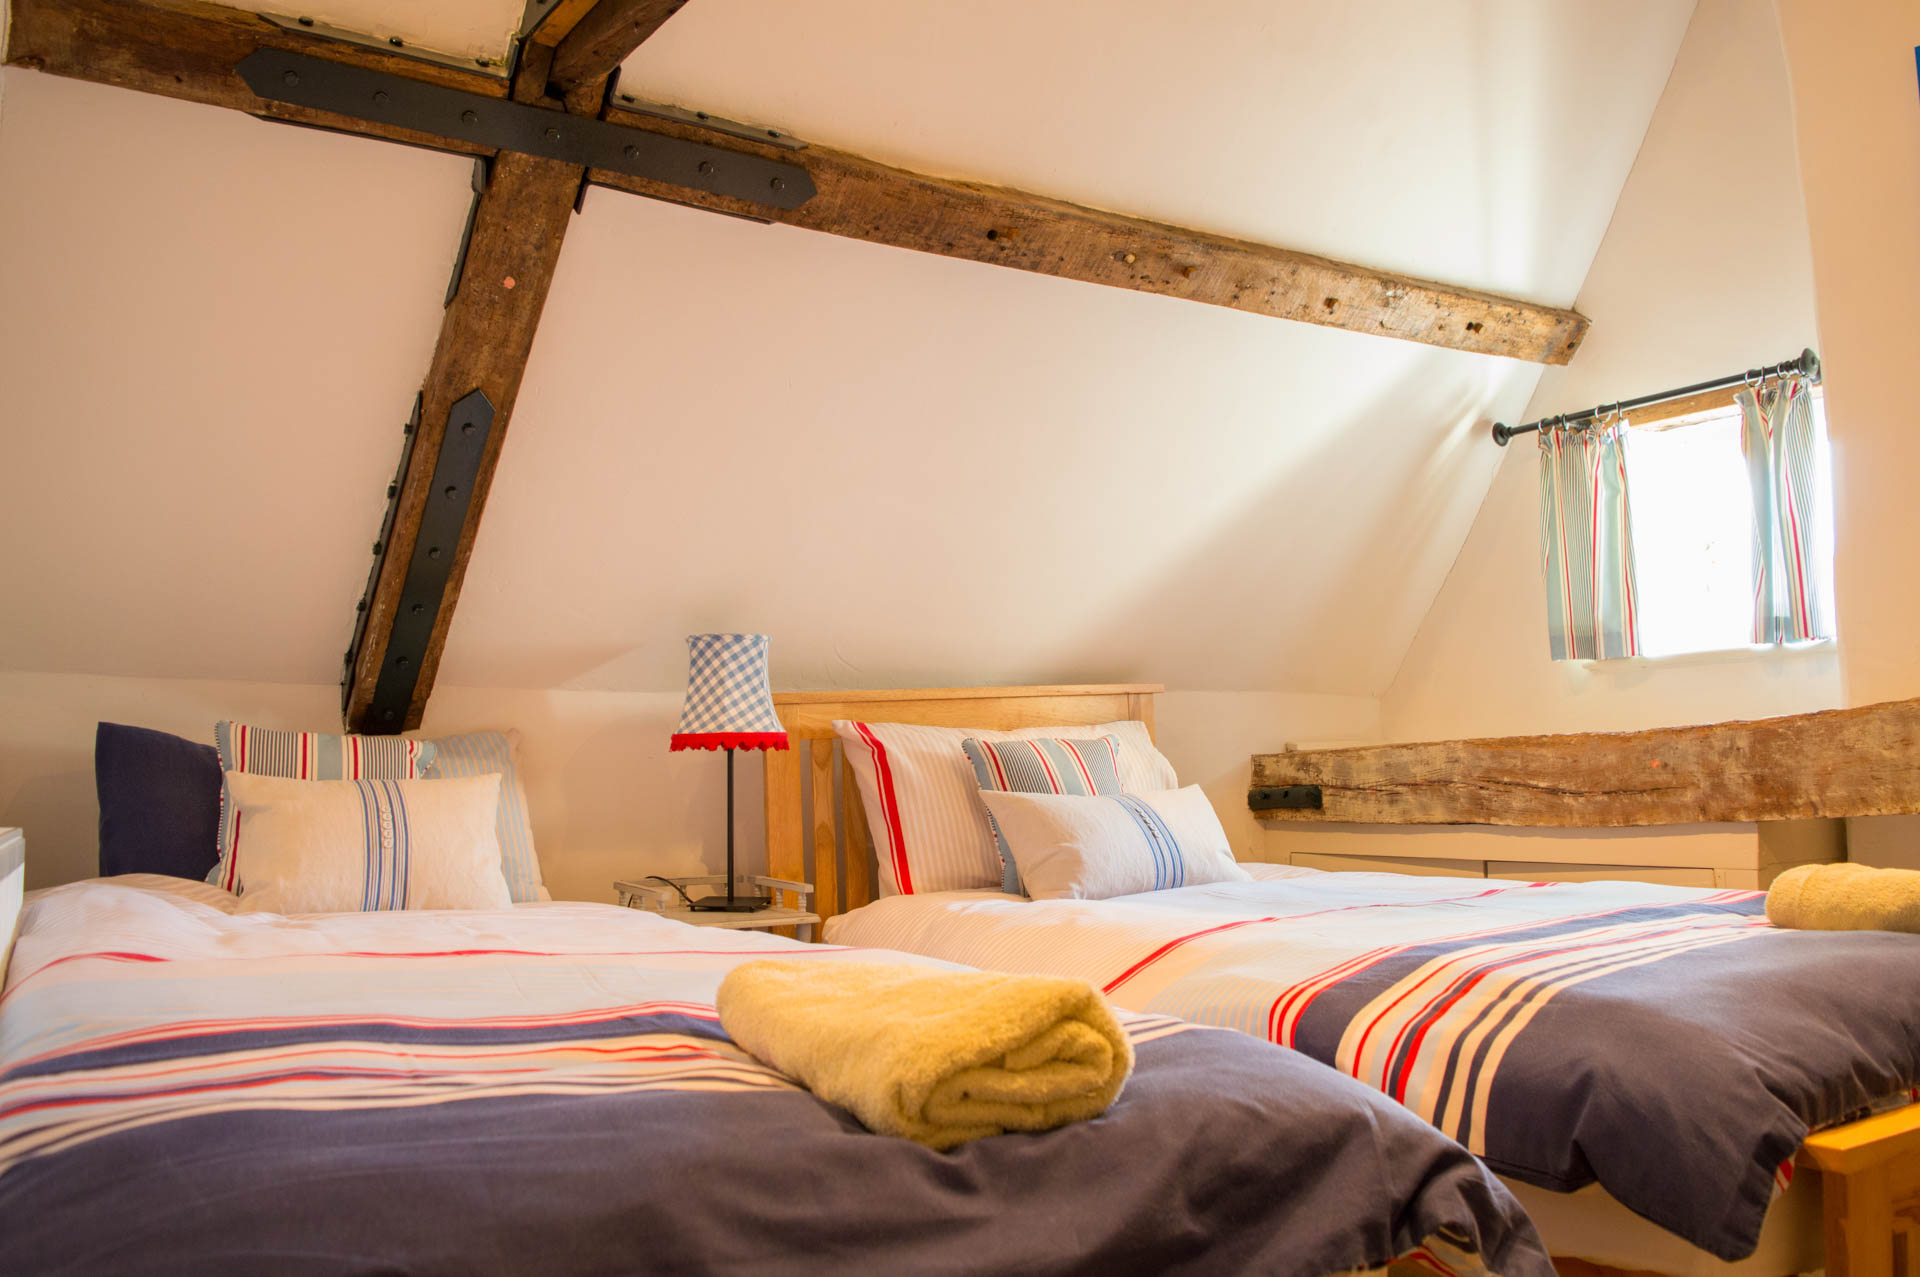 Twin bedroom with wooden ceiling beams.